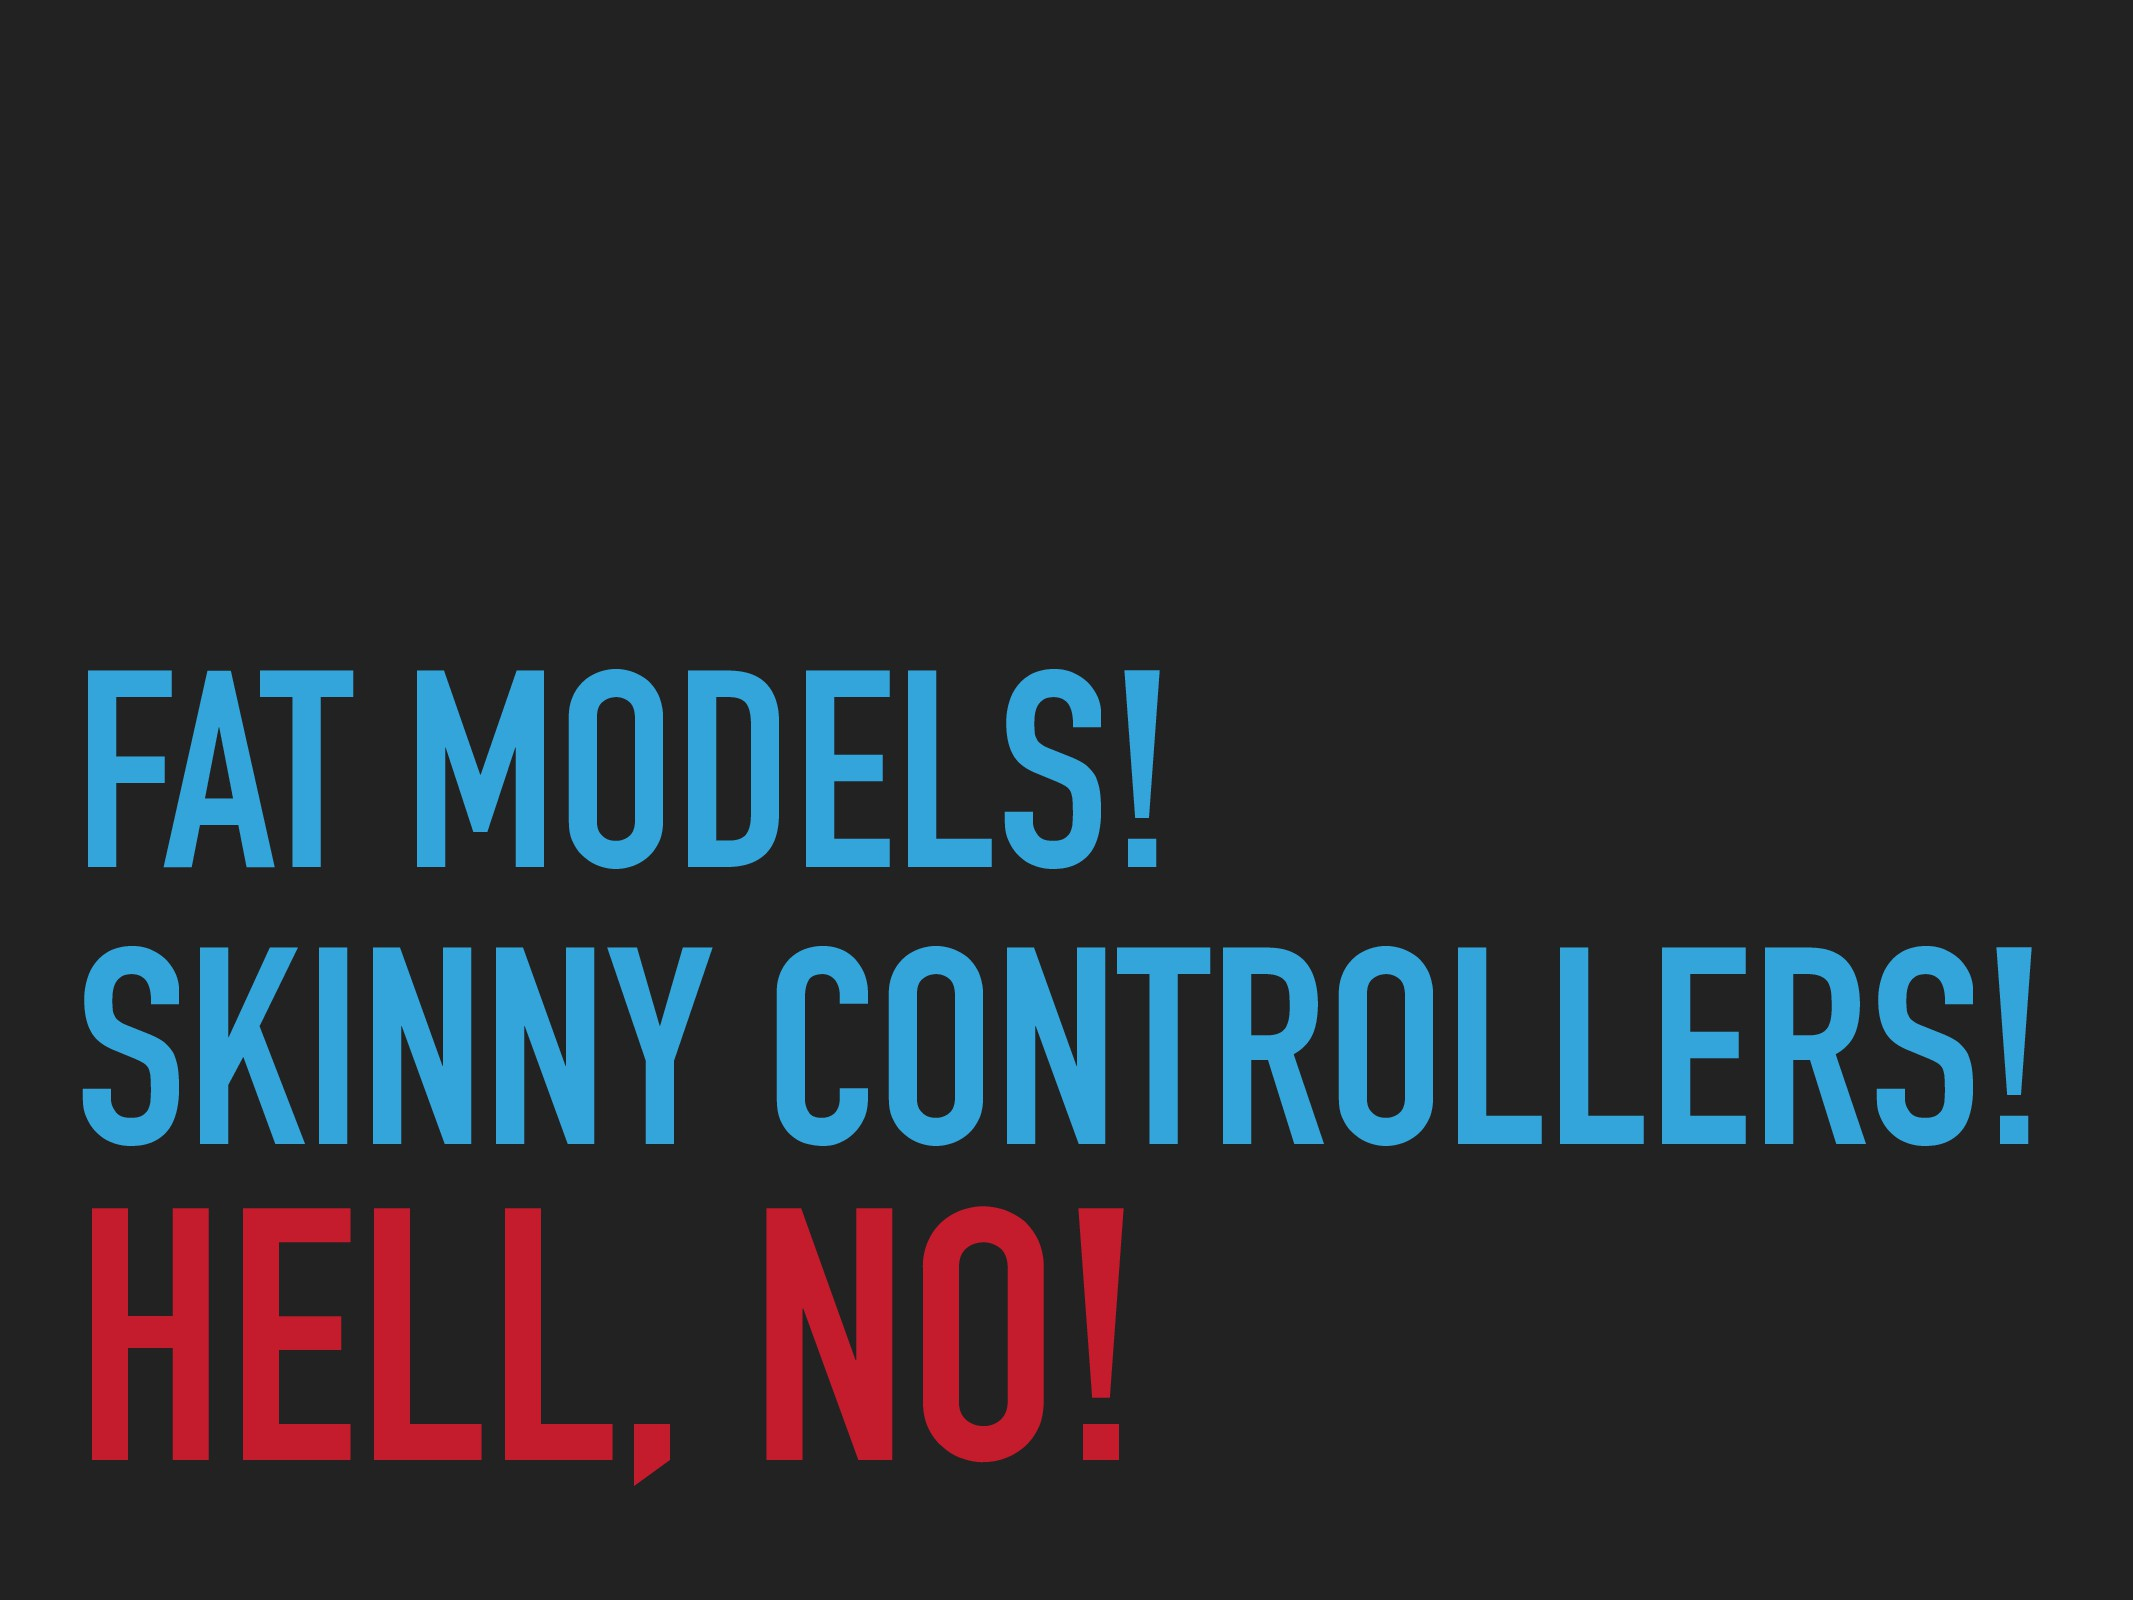 HELL, NO! FAT MODELS! SKINNY CONTROLLERS!